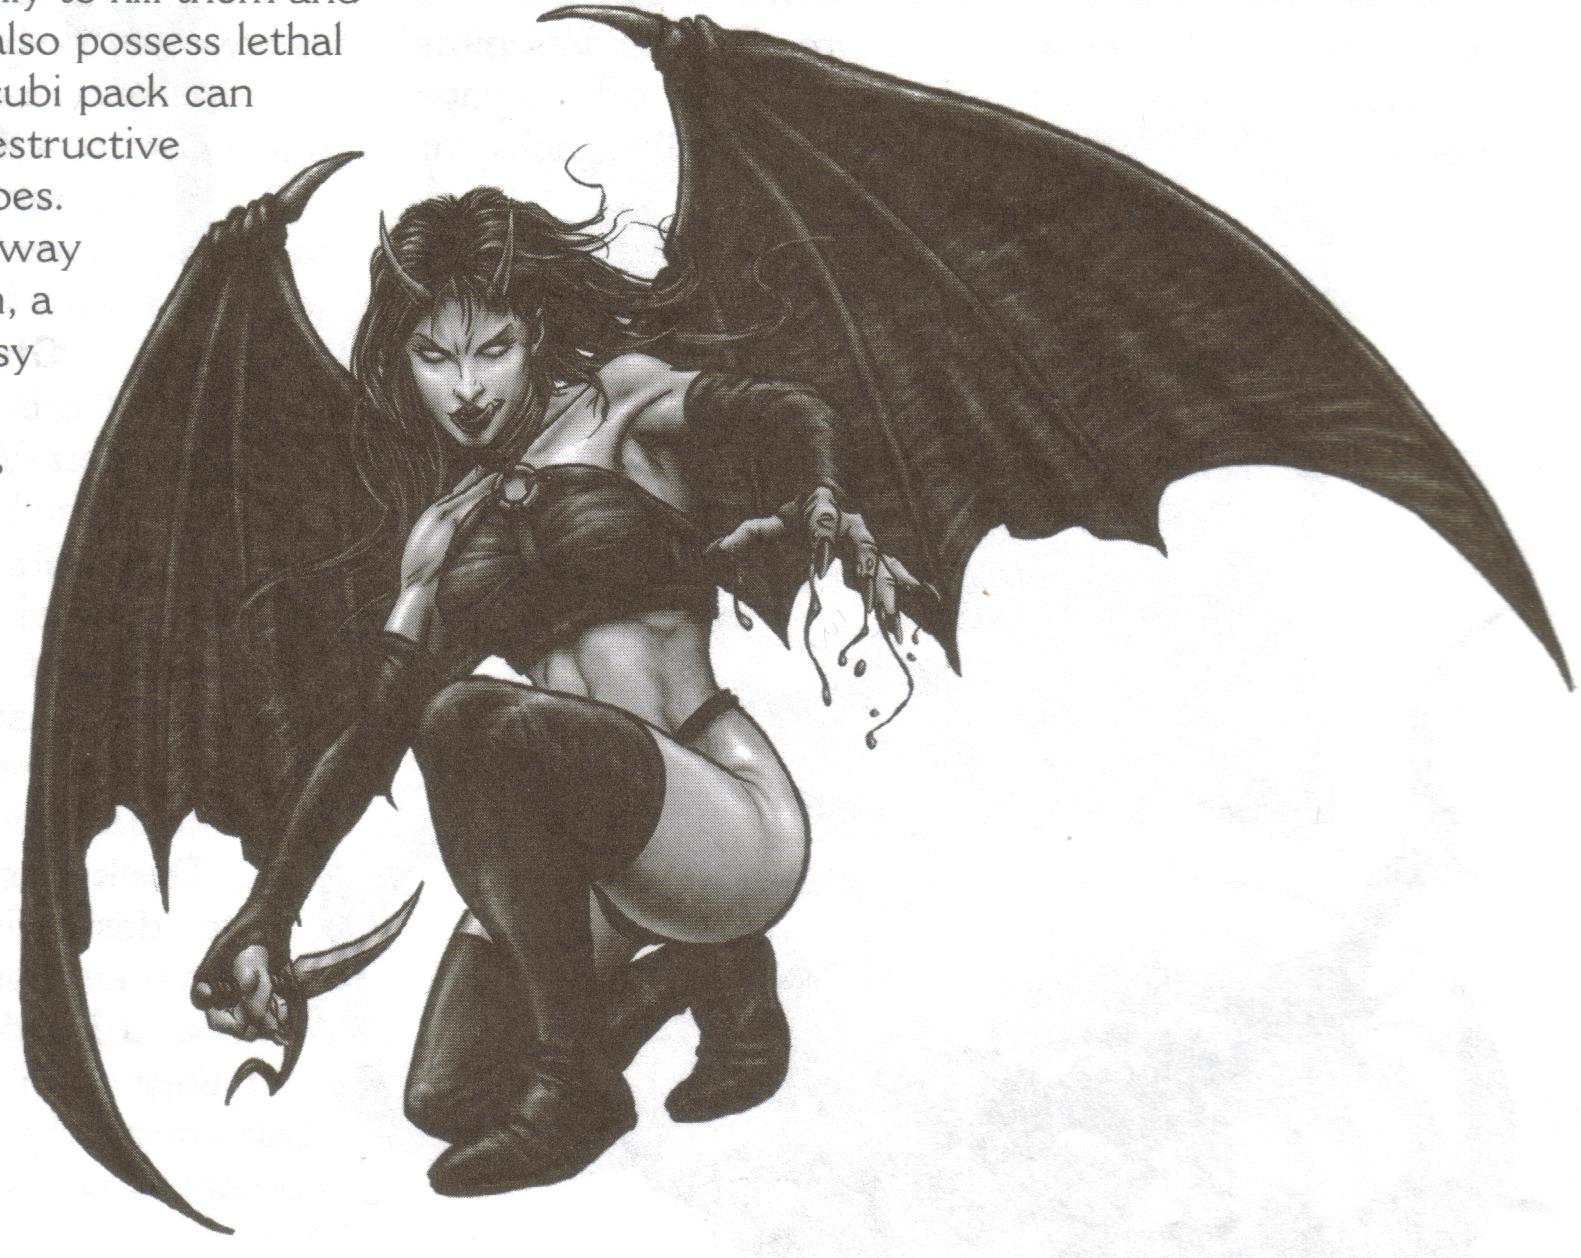 The naked succubus sex slave murders